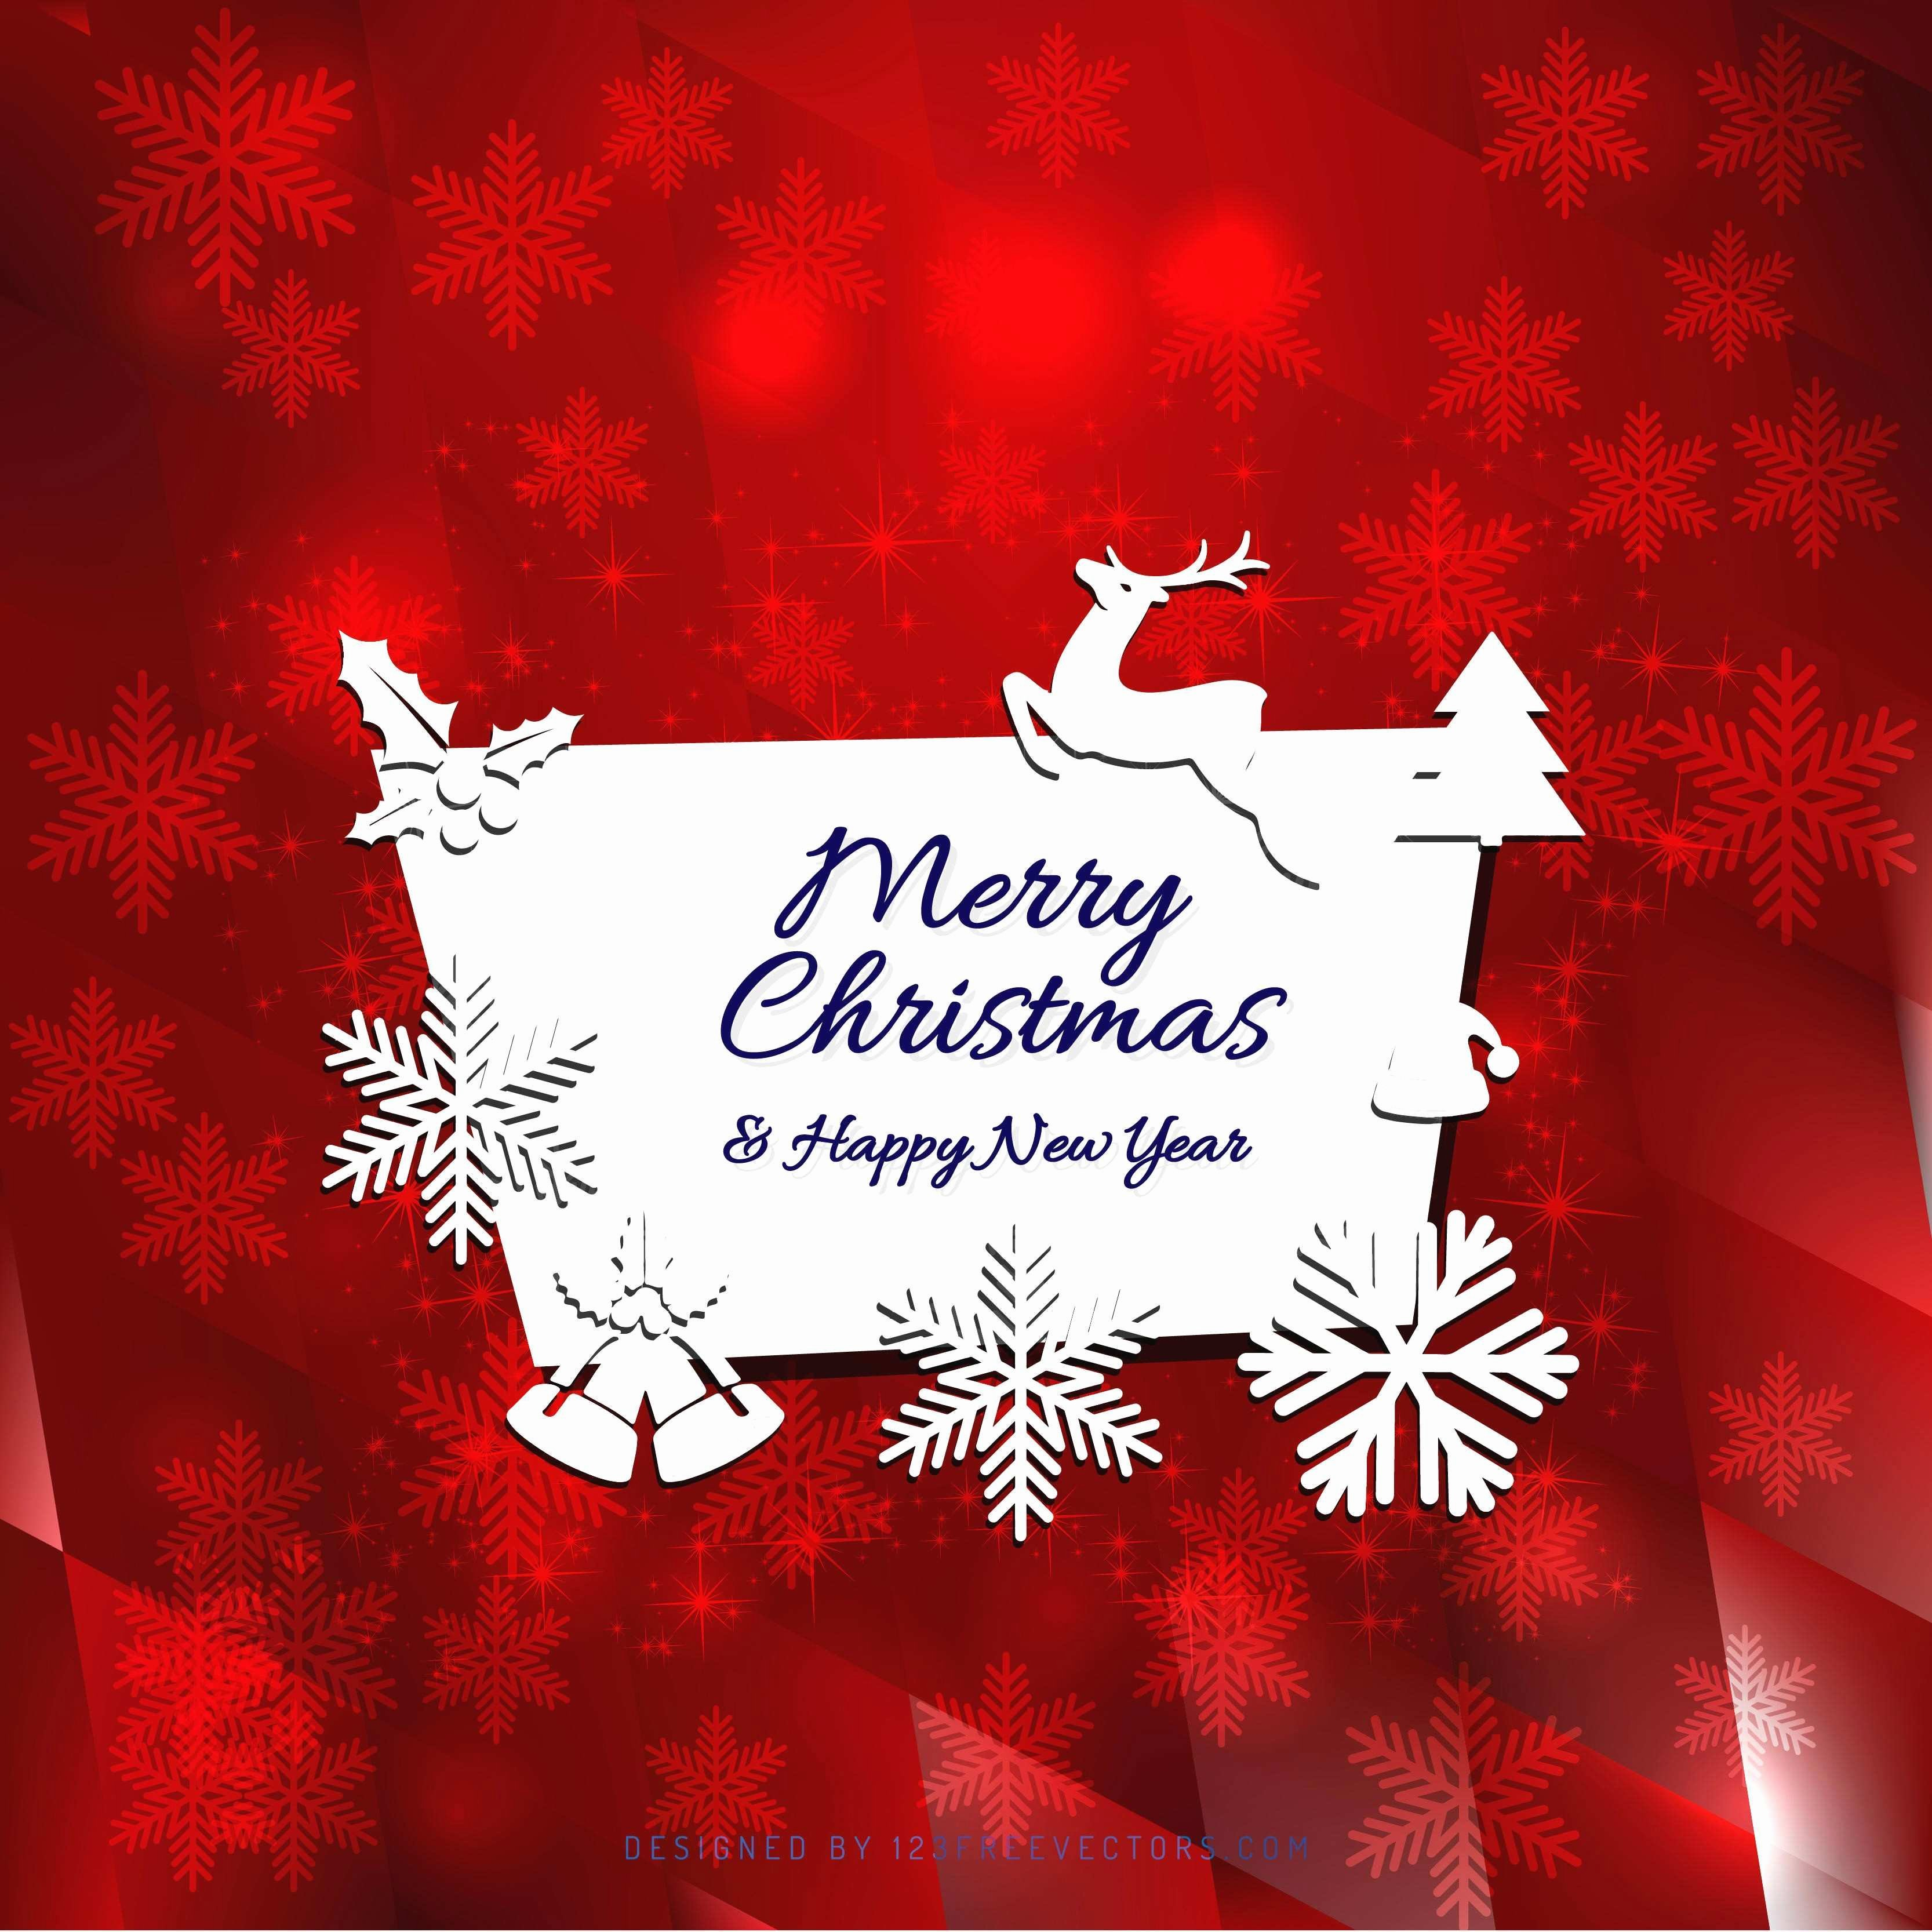 Photoshop Greeting Card Template Elegant Awesome Christmas Card Templates Shop Free Download